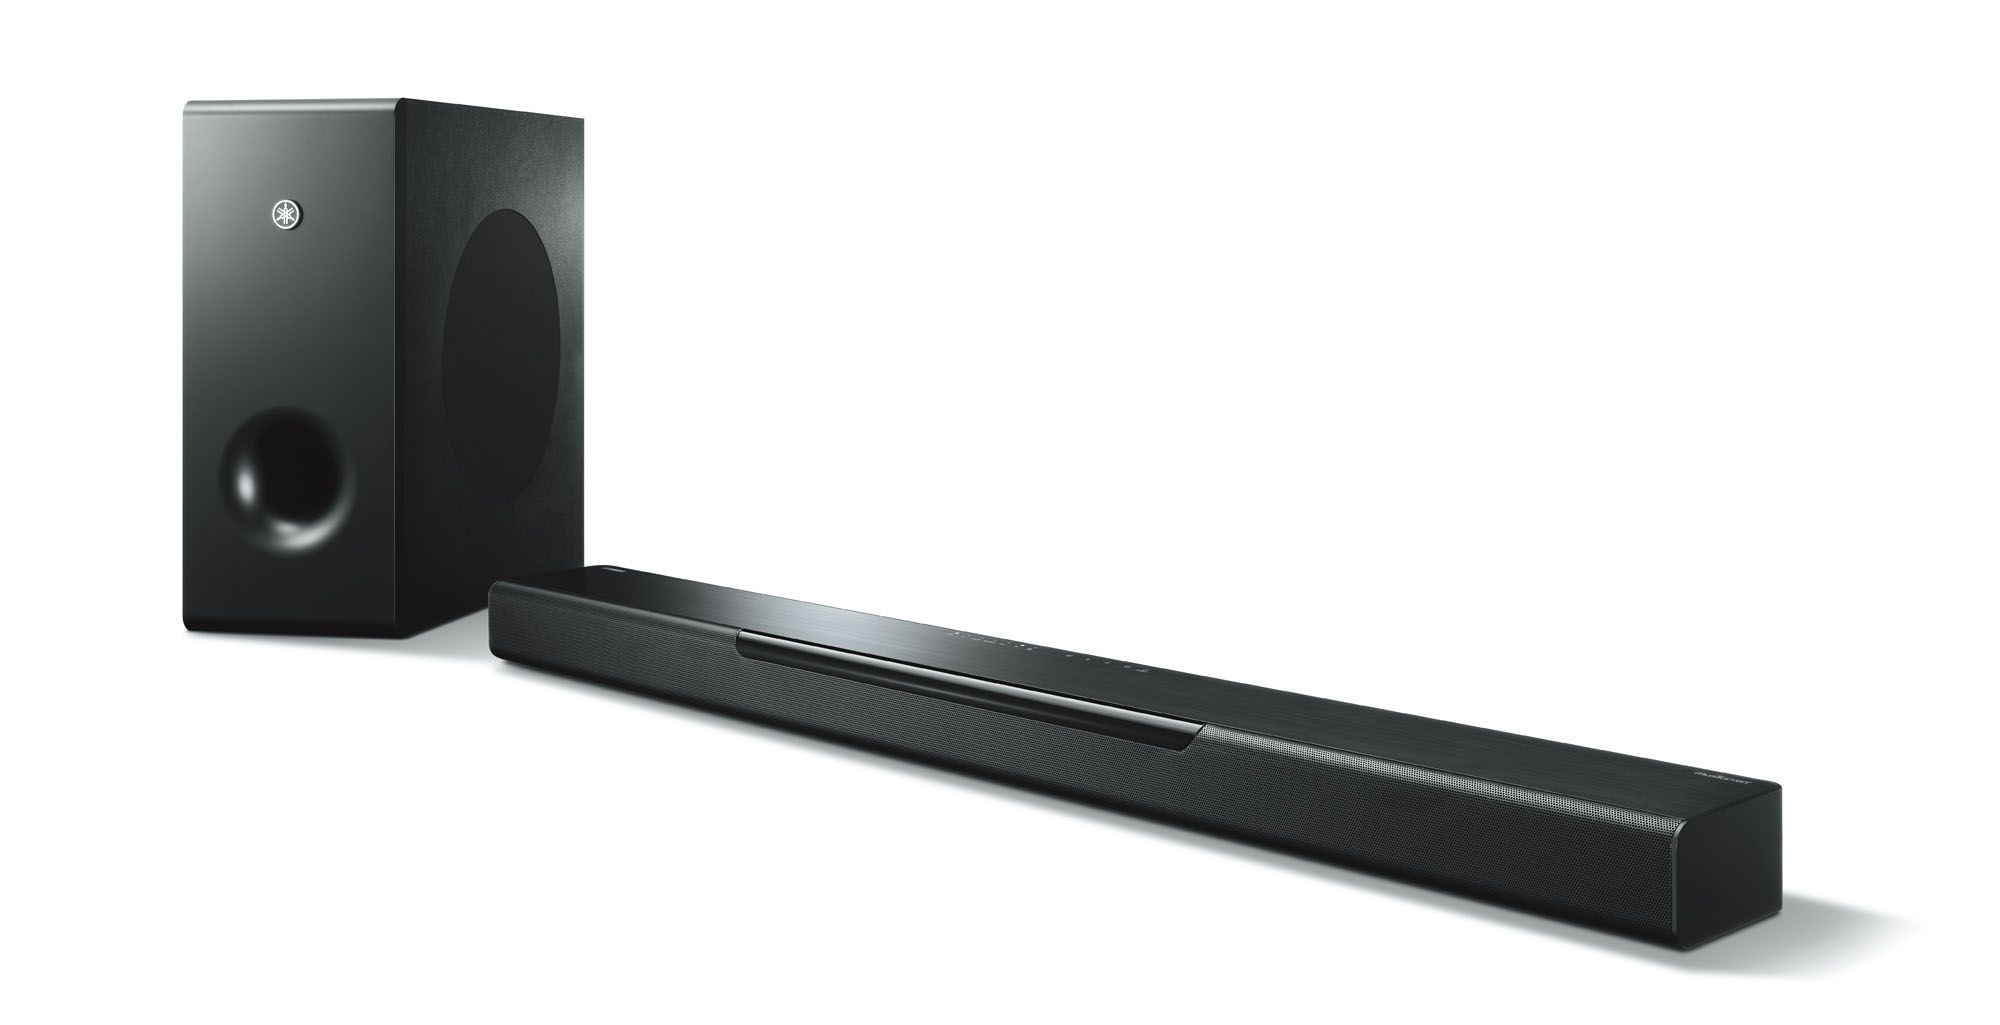 yamaha musiccast bar 400 disponibilit caract ristiques. Black Bedroom Furniture Sets. Home Design Ideas